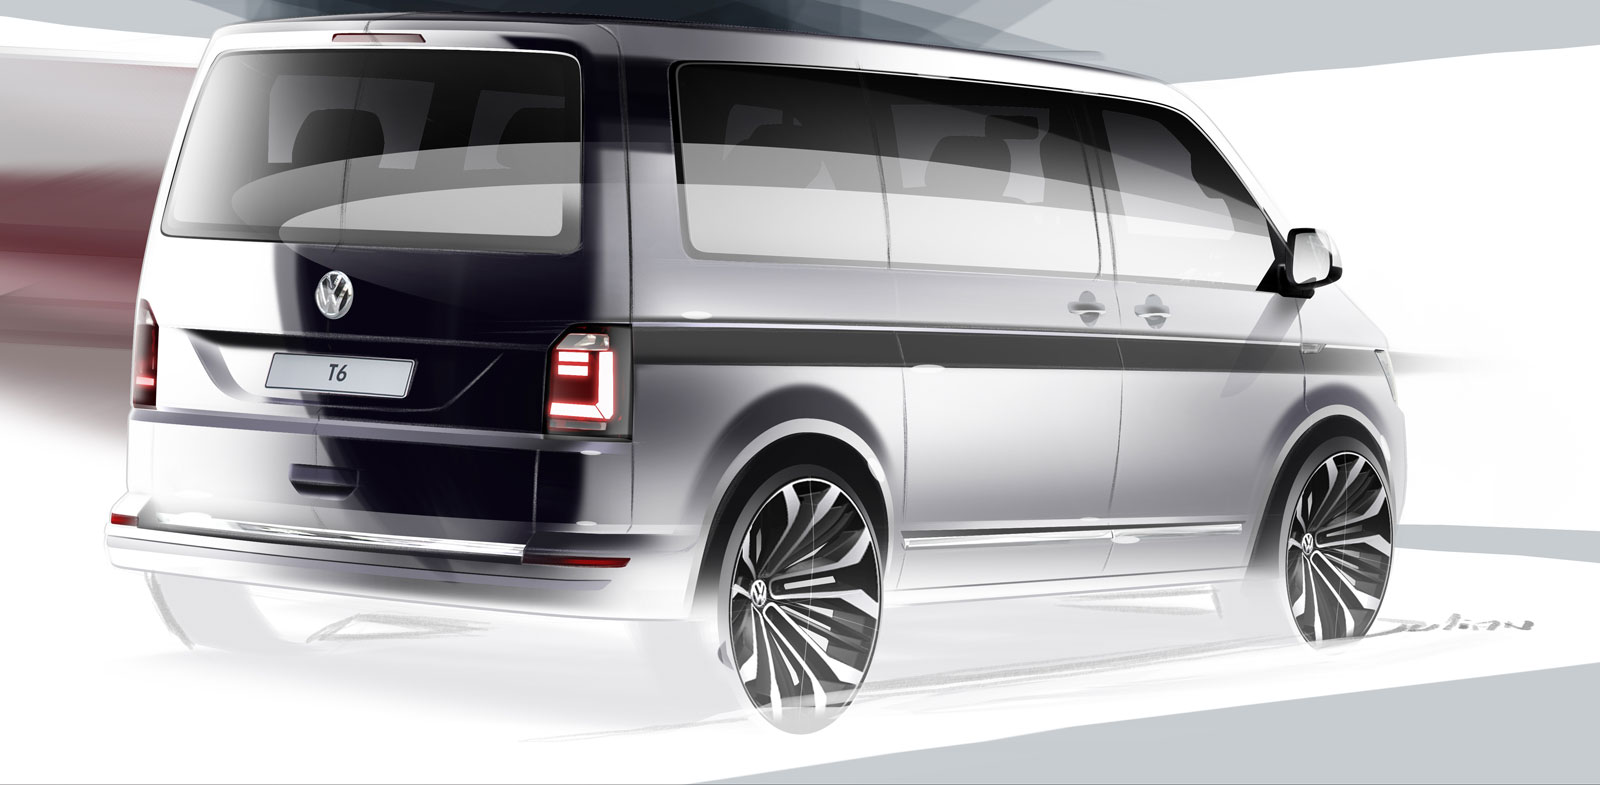 sixth gen volkswagen transporter previewed in design render car body design. Black Bedroom Furniture Sets. Home Design Ideas